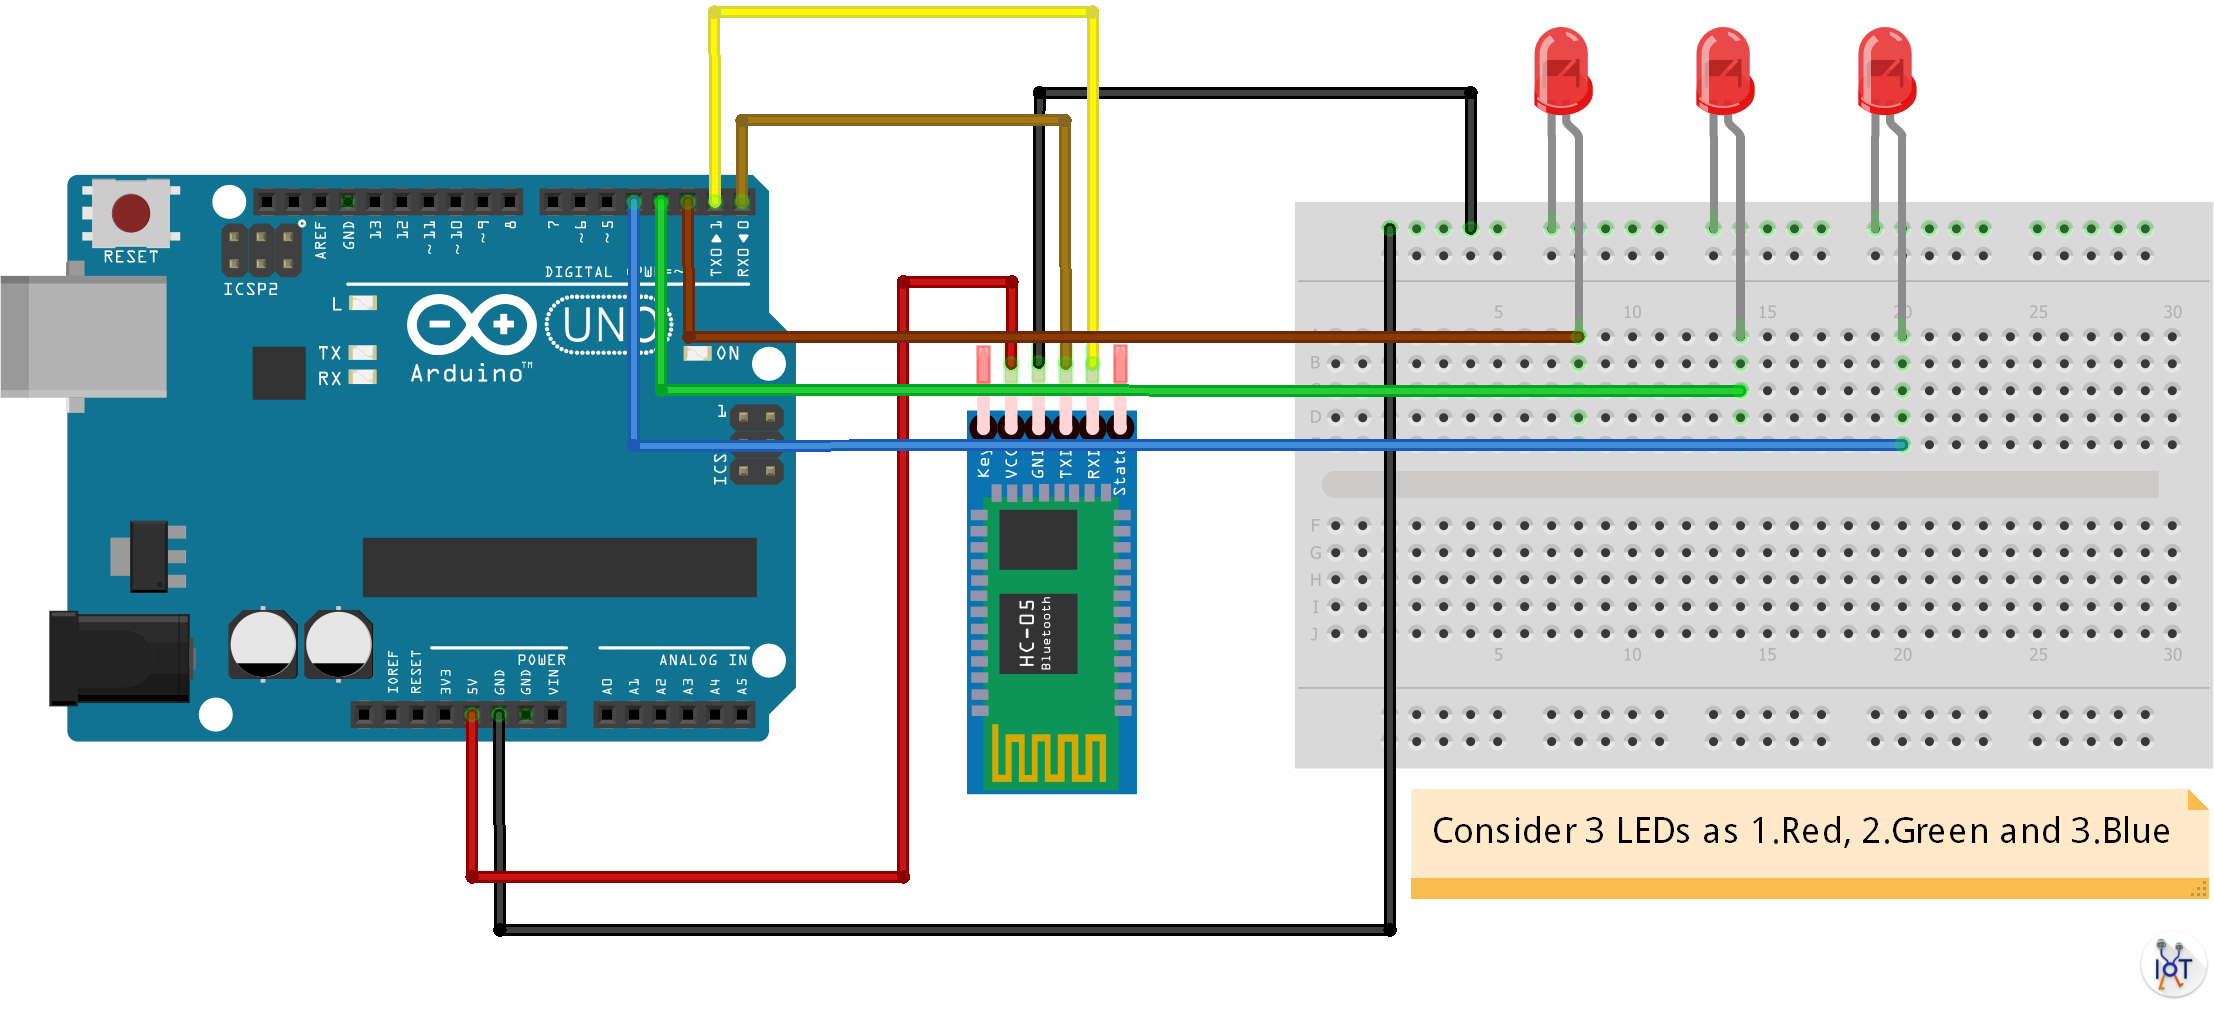 Control Led Using Your Voice Command Module Wiring Diagram Controlling Iotboys Com A2wrardmf4